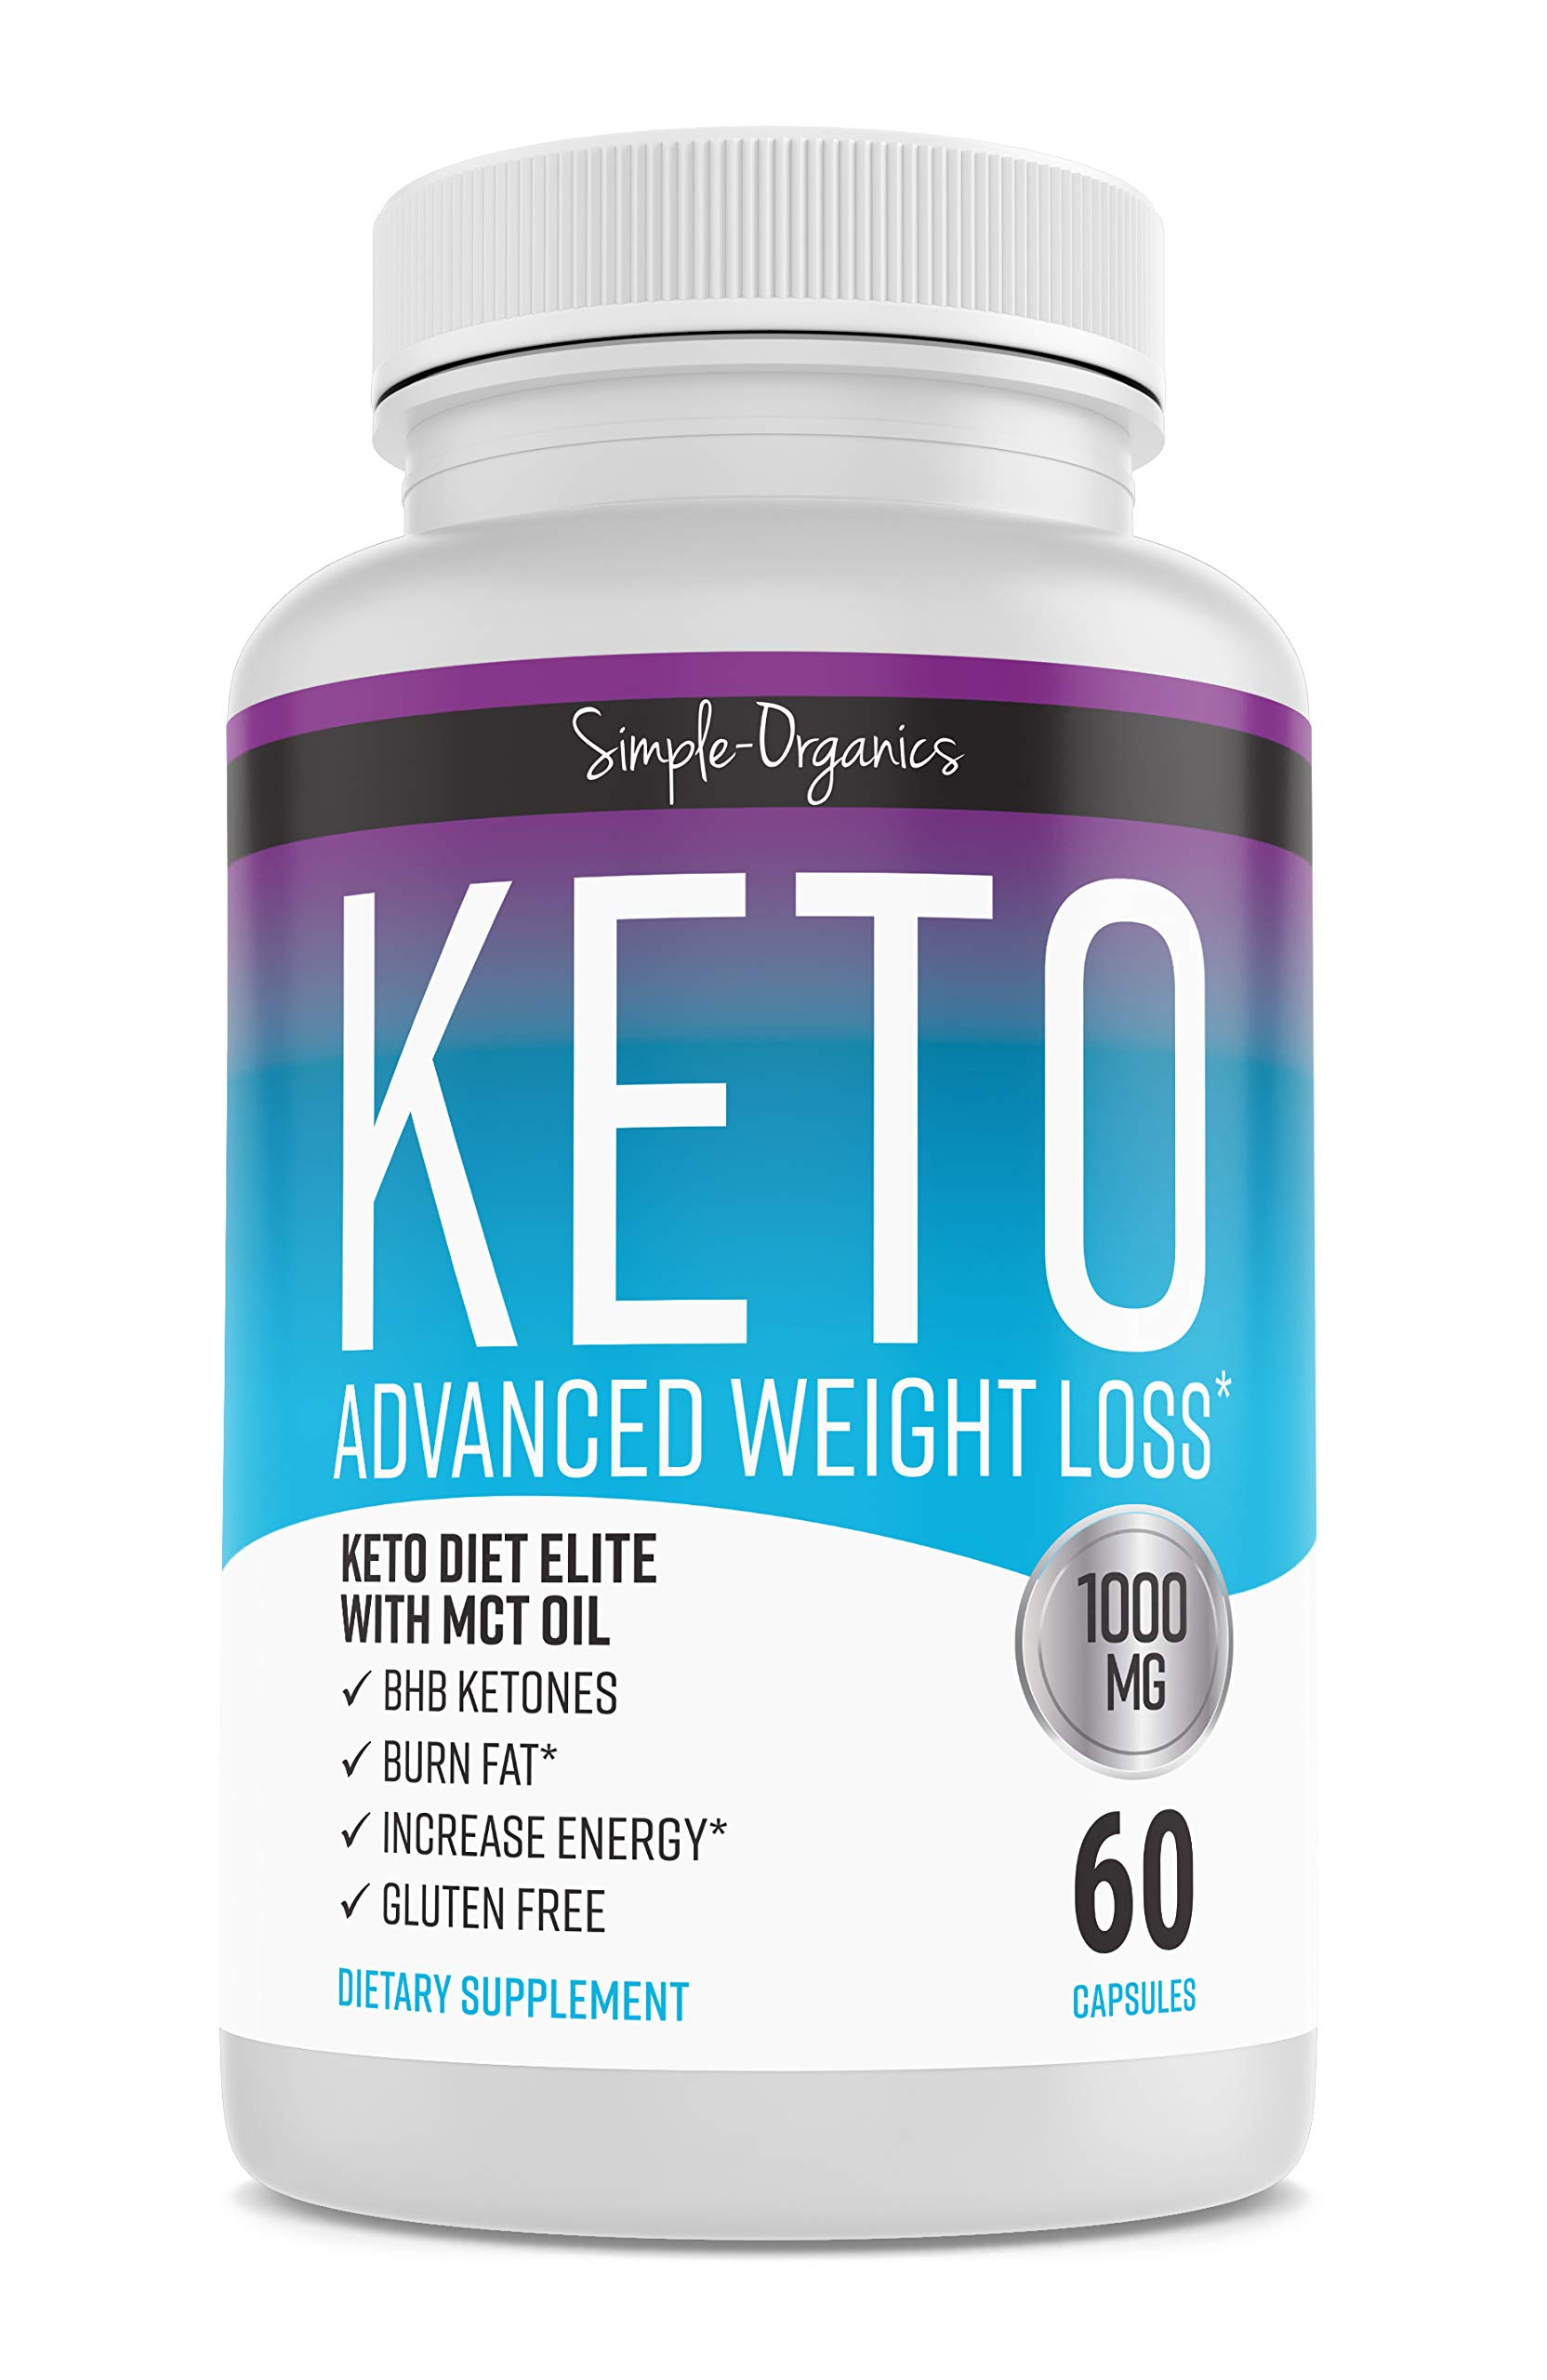 Keto Diet Pills 1000 Mg- Advanced Weight Loss Supplements- Burn Fat Instead of Carbs- 30 Day Supply by Simple-Organics